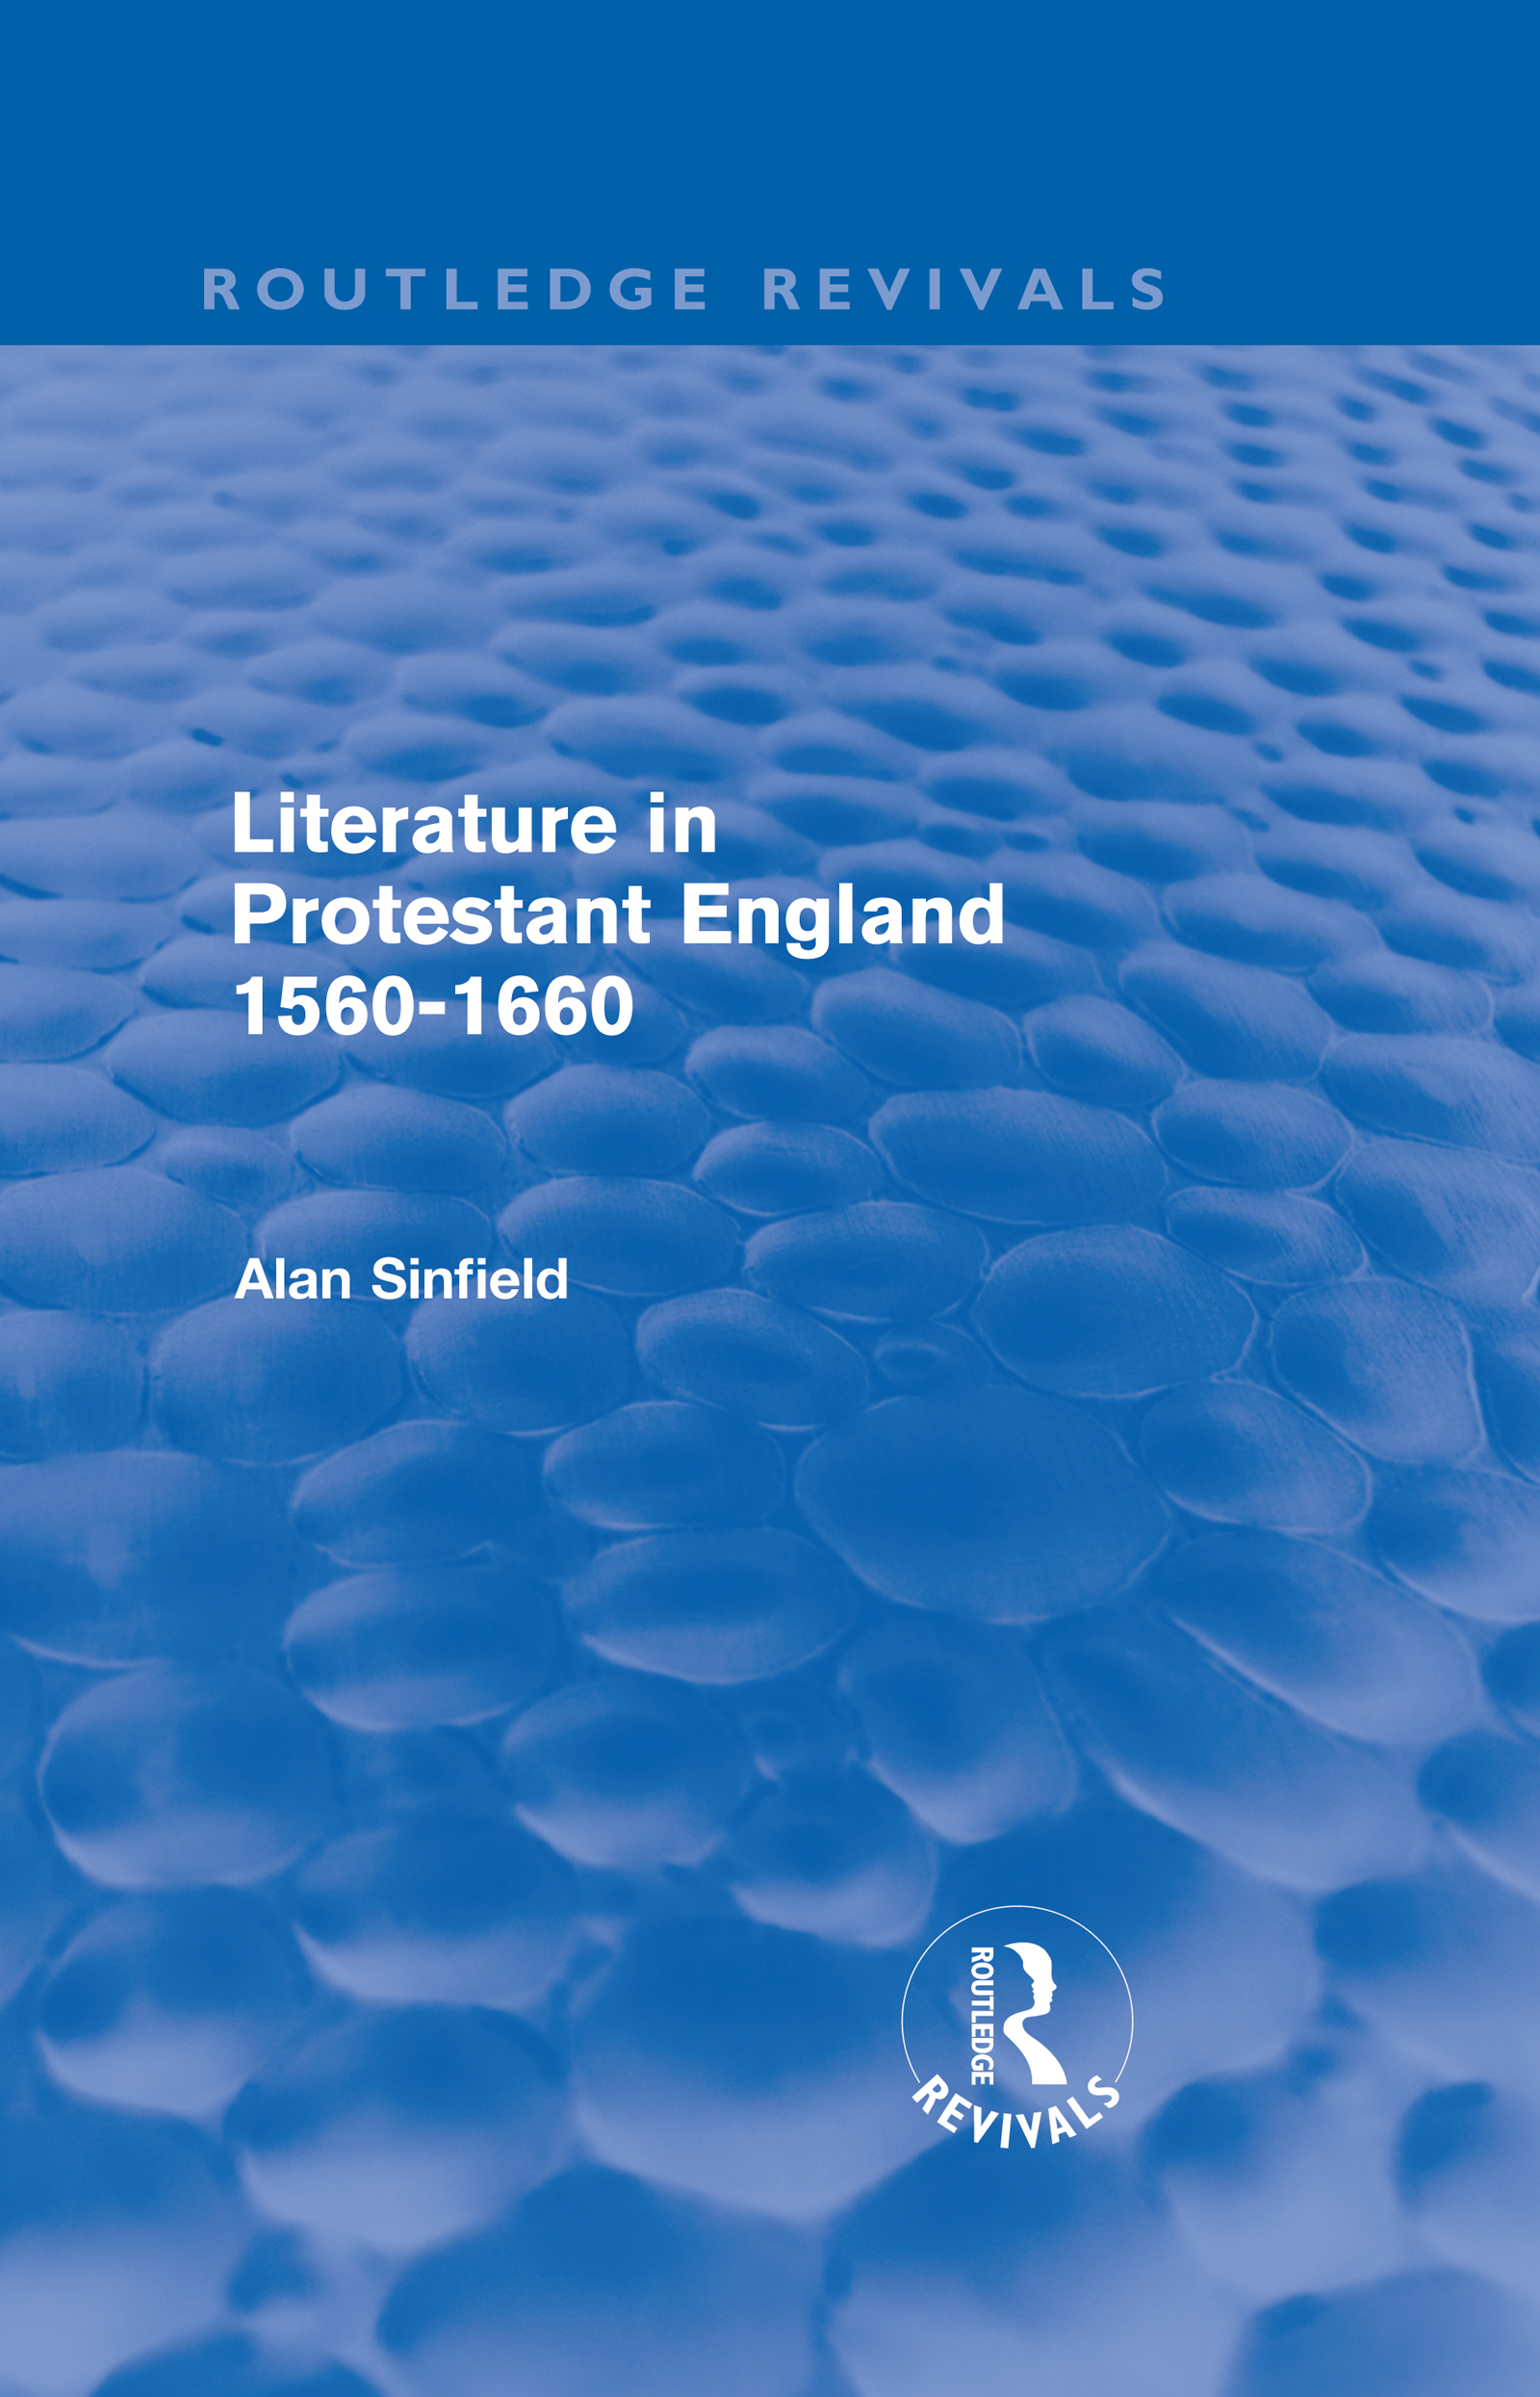 Literature in Protestant England, 1560-1660 (Routledge Revivals) (Hardback) book cover